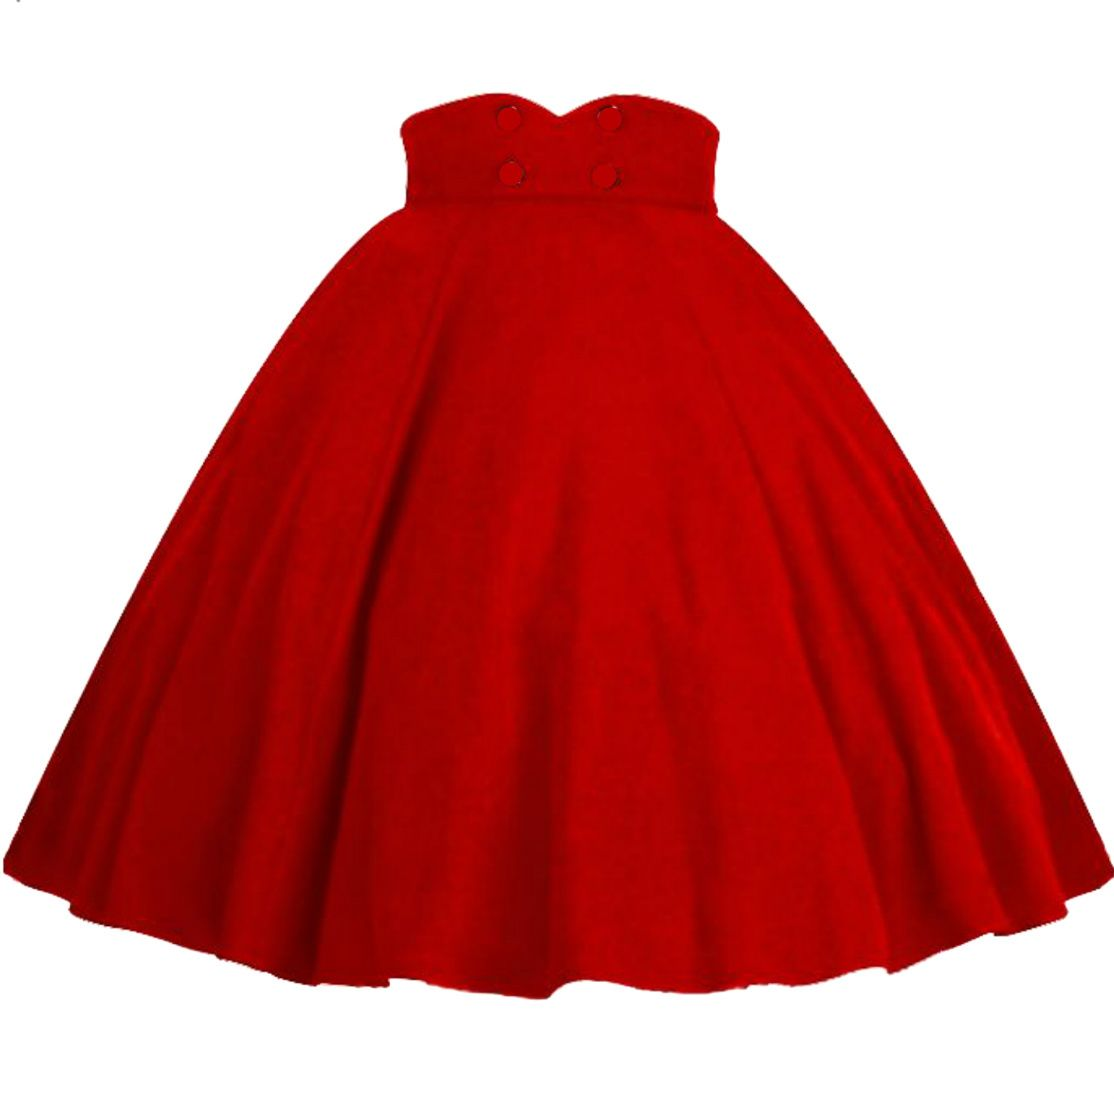 Rockabilly Red Full Circle Swing Skirt AVAILABLE IN SIZES SMALL - XXXL